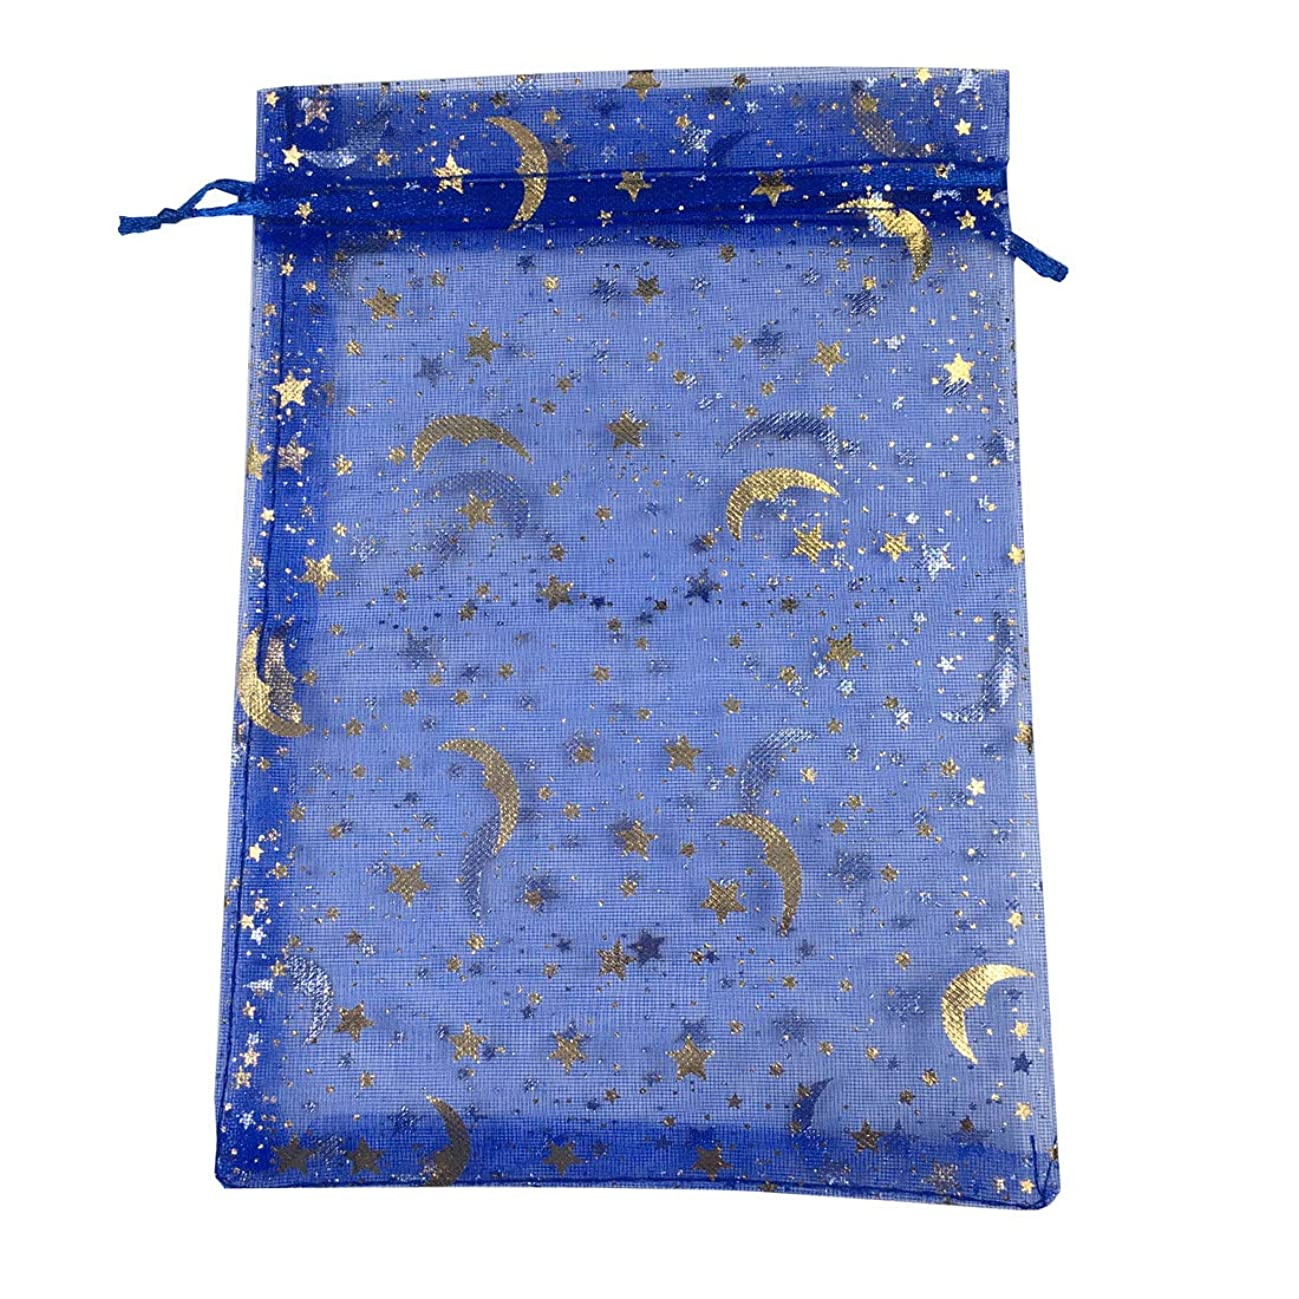 COTOSEY 100PCS Stars and Moon Organza Drawstring Pouches Jewelry Party Wedding Favor Gift Bags (4 x 6 Navy Blue)